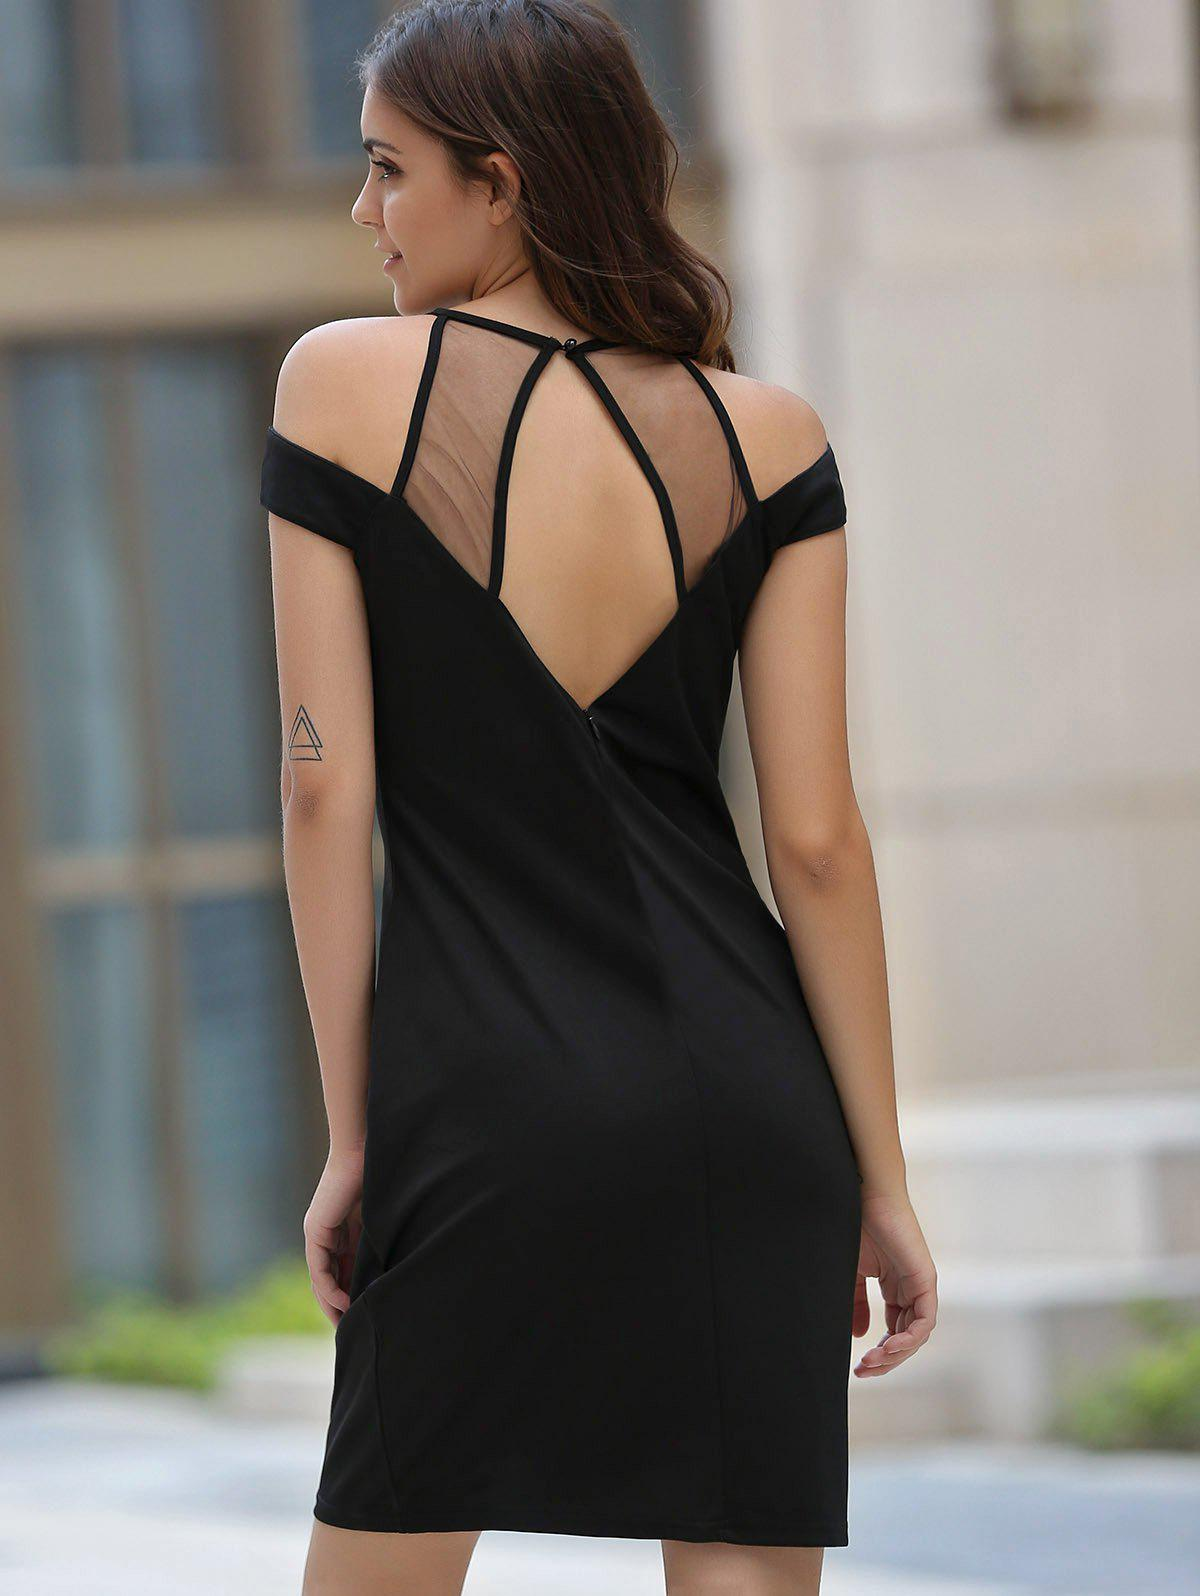 Fashionable Round Neck Voile Splicing Hollow Out Dress For Women - BLACK S